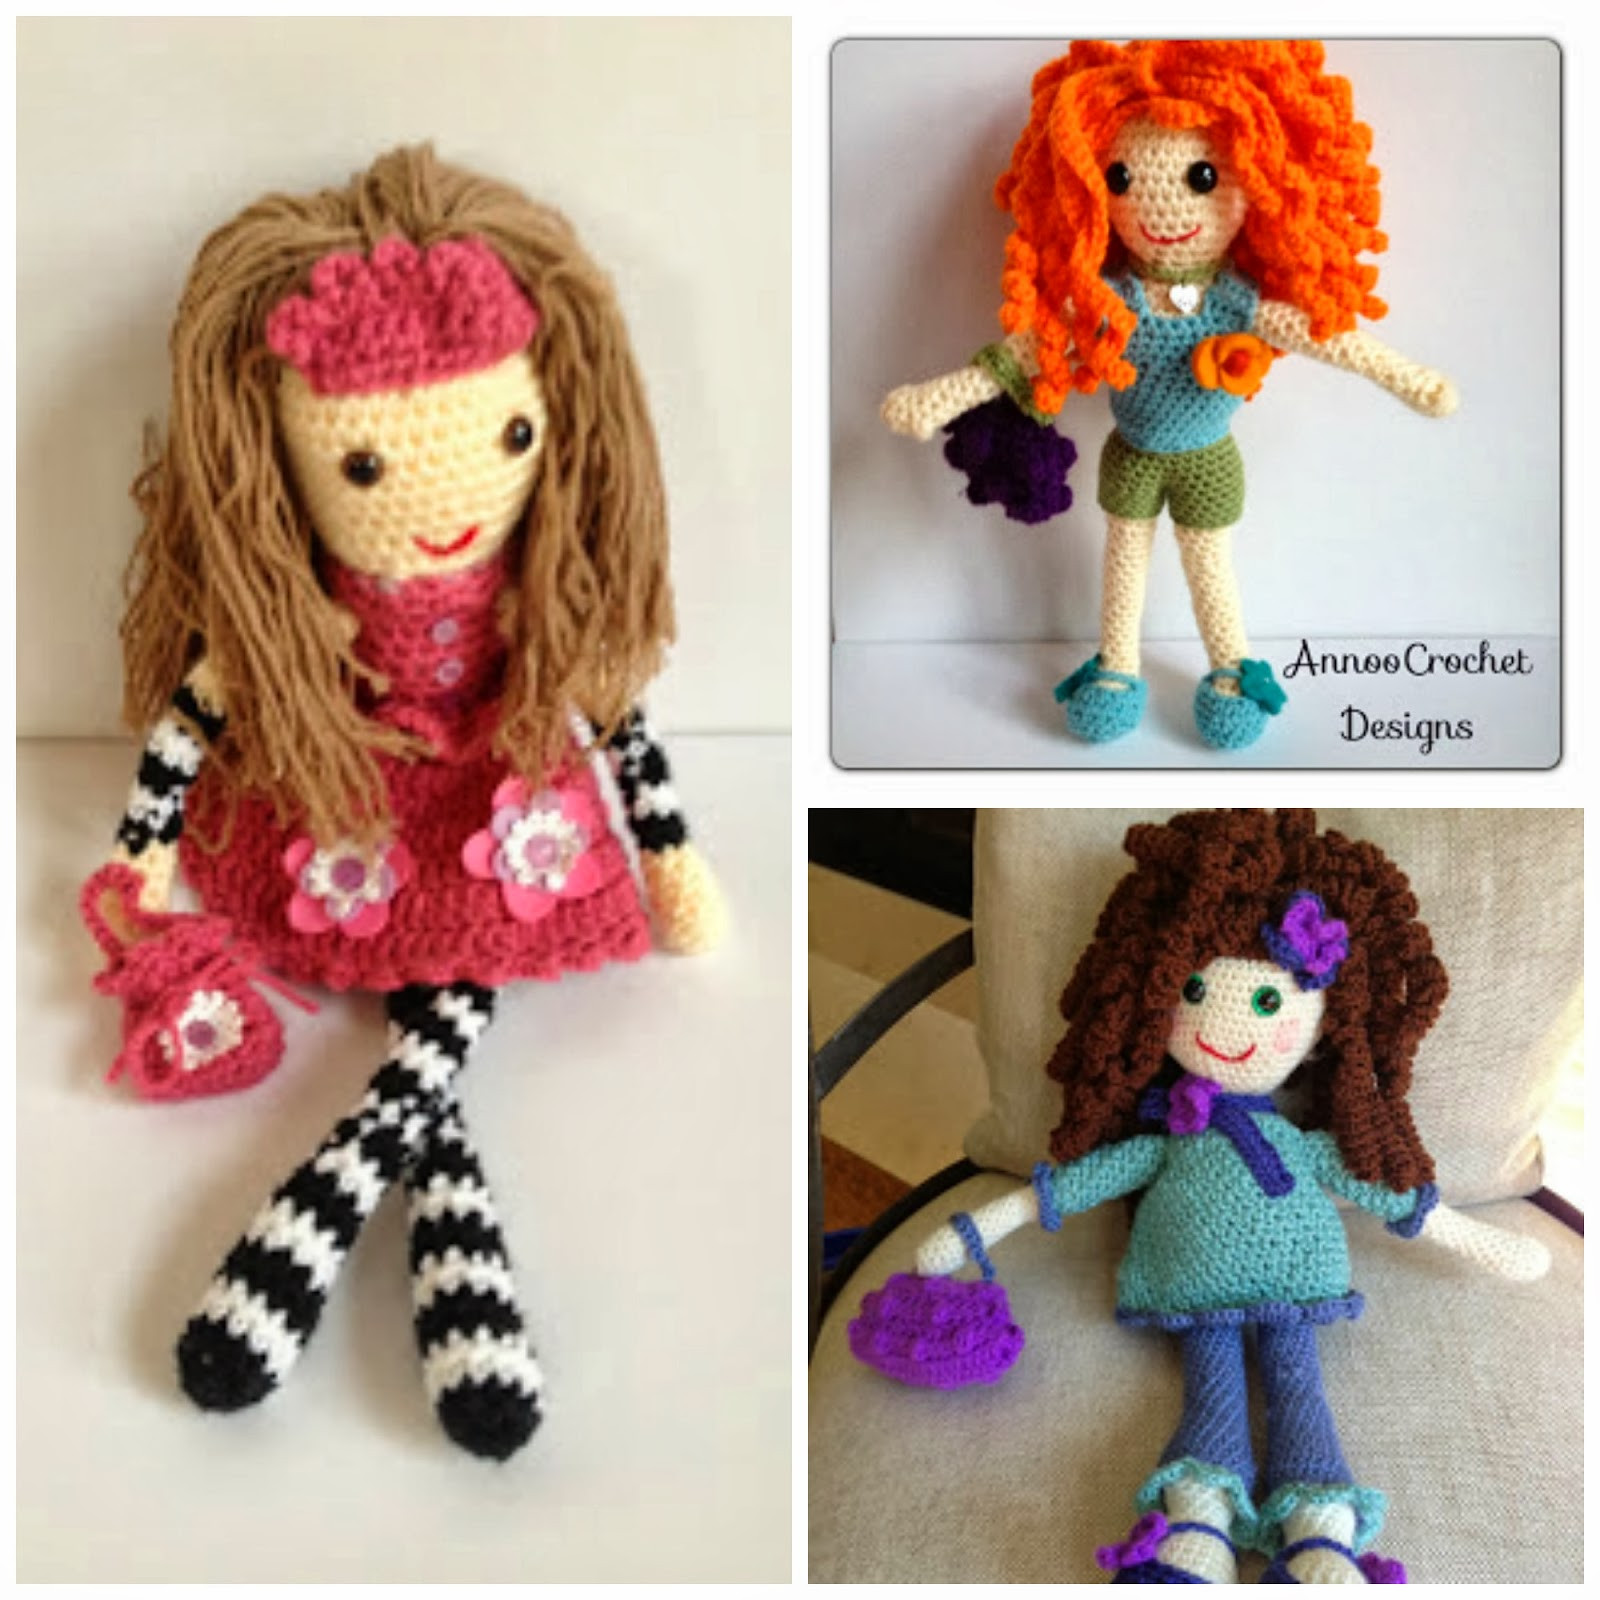 Crochet Doll Awesome 20 Free Crochet Doll Patterns Free Crochet Patterns and Of Crochet Doll Inspirational Snow White Doll Crochet Pattern